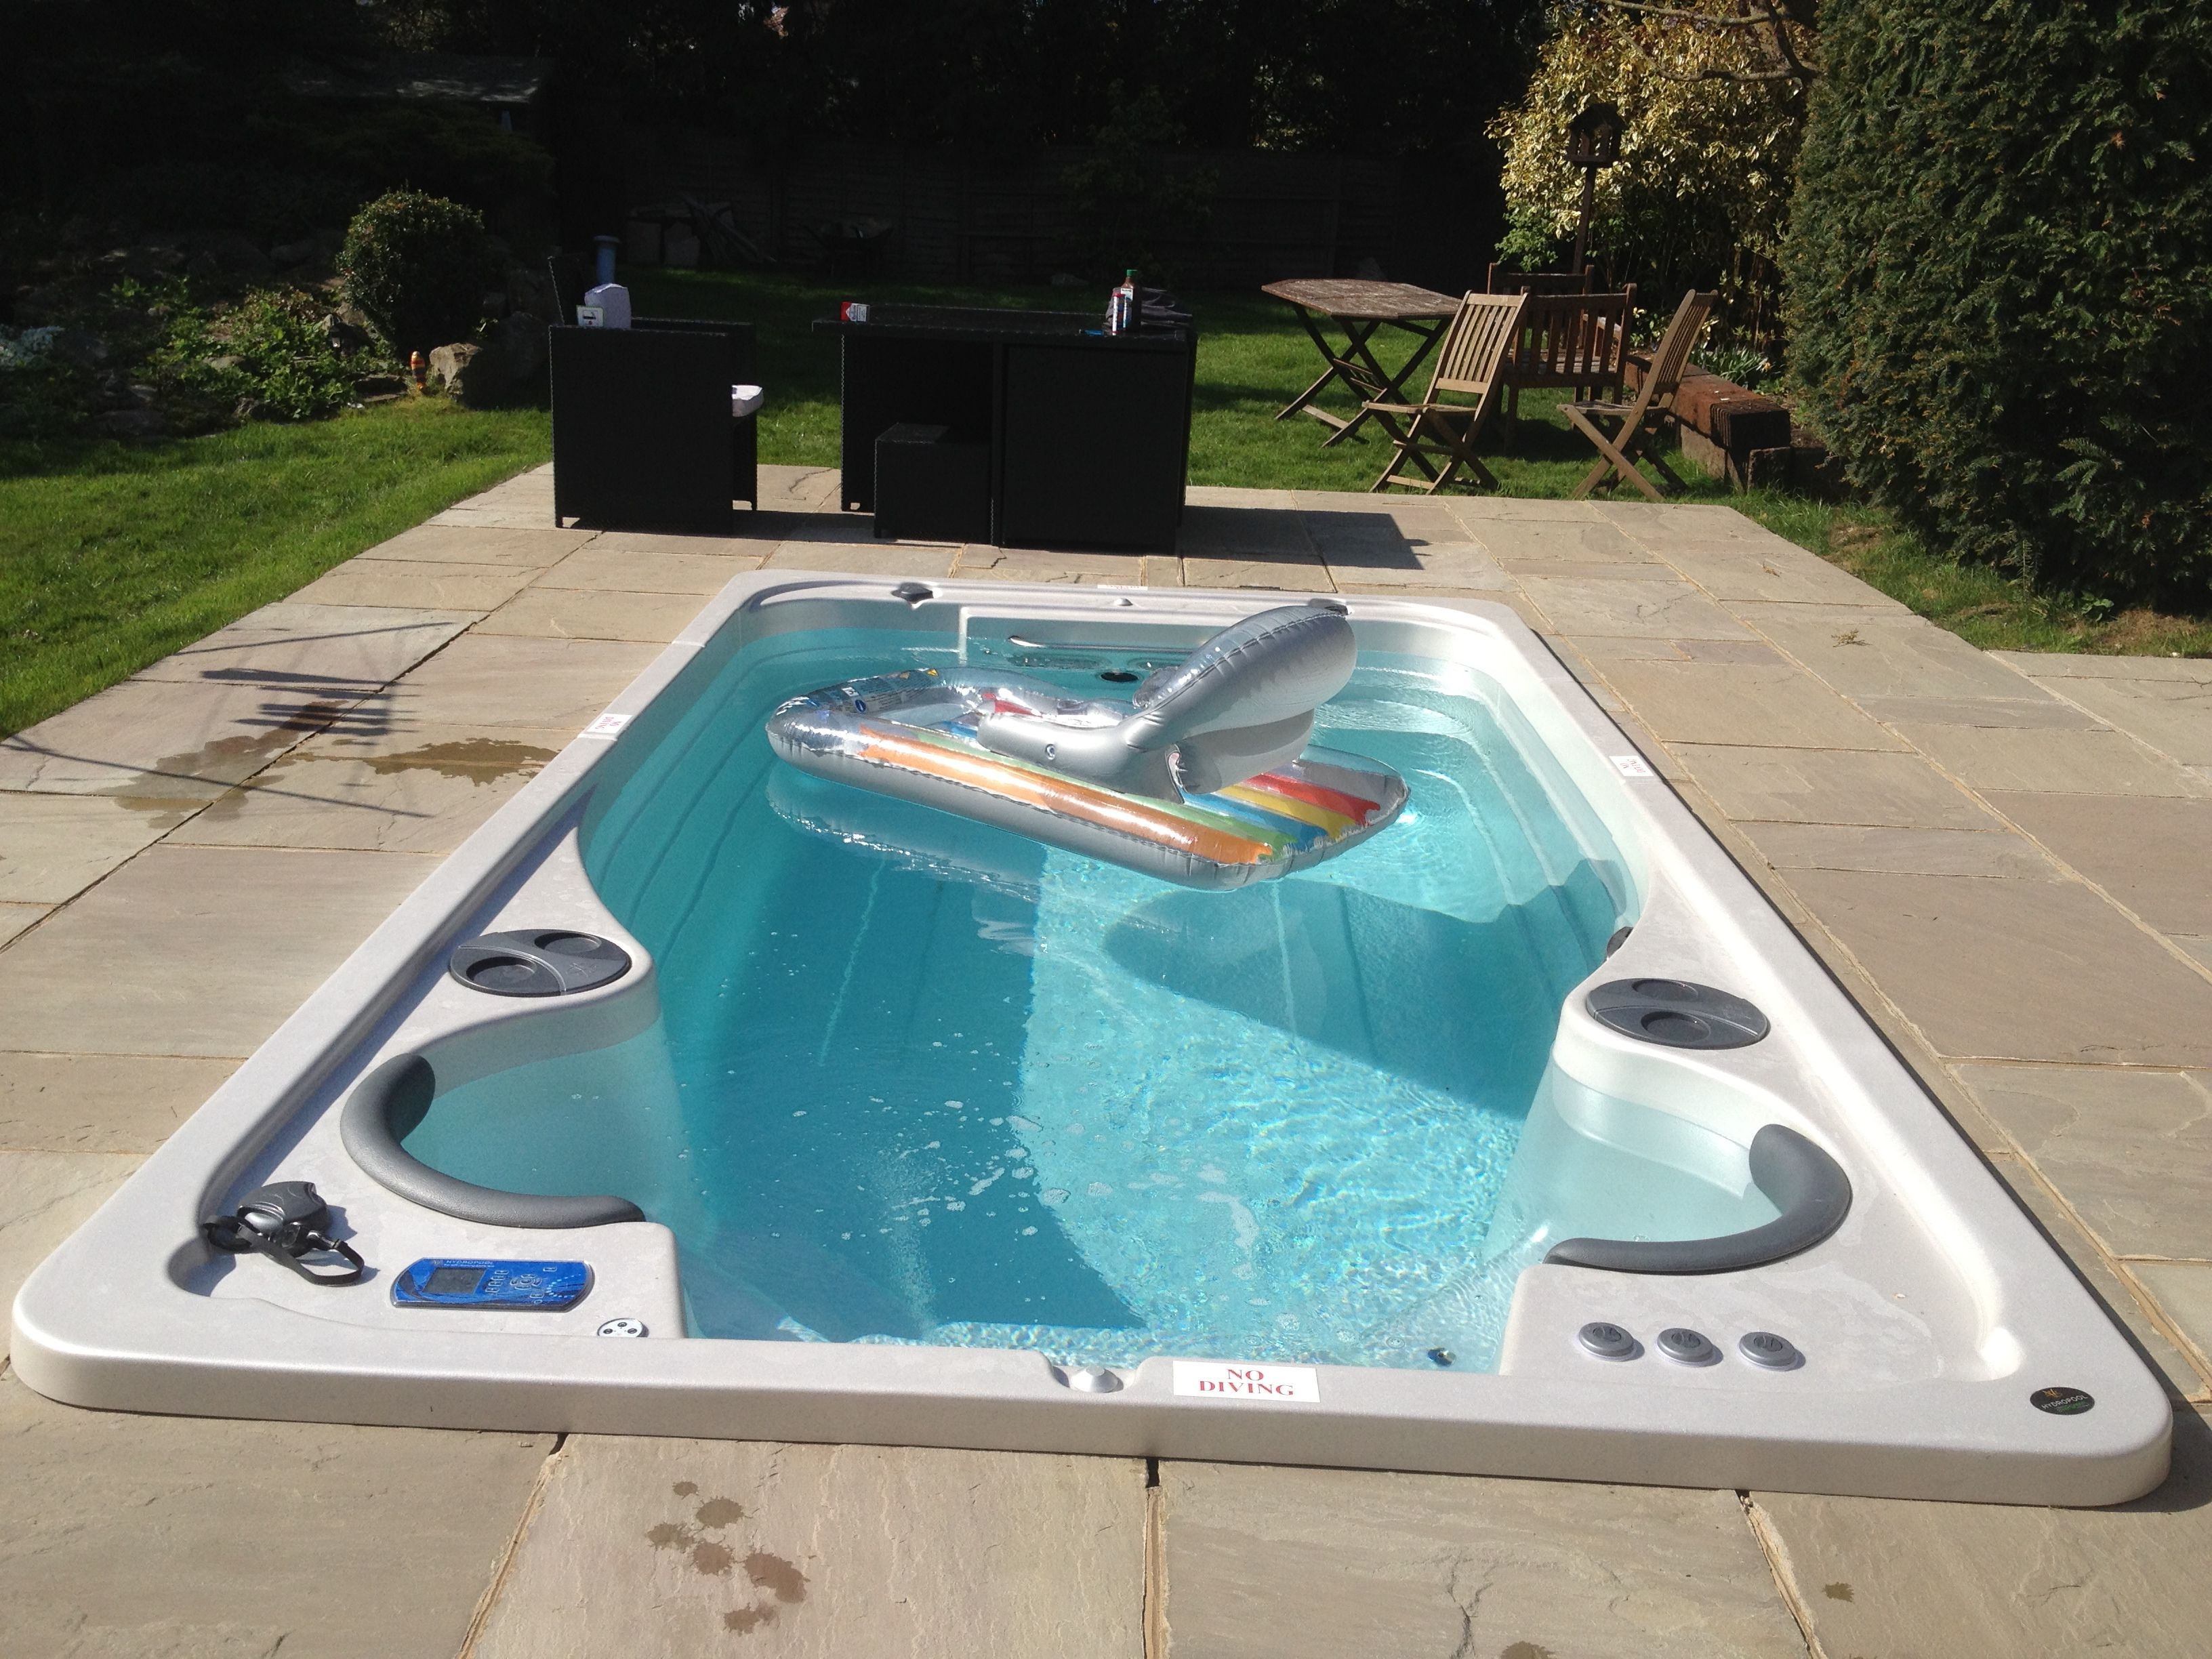 Hydropool Self Cleaning Swim Spa The Swim In Place Pool That Is Fun For All The Family Swim Spa Swim Spa Landscaping Indoor Swim Spa